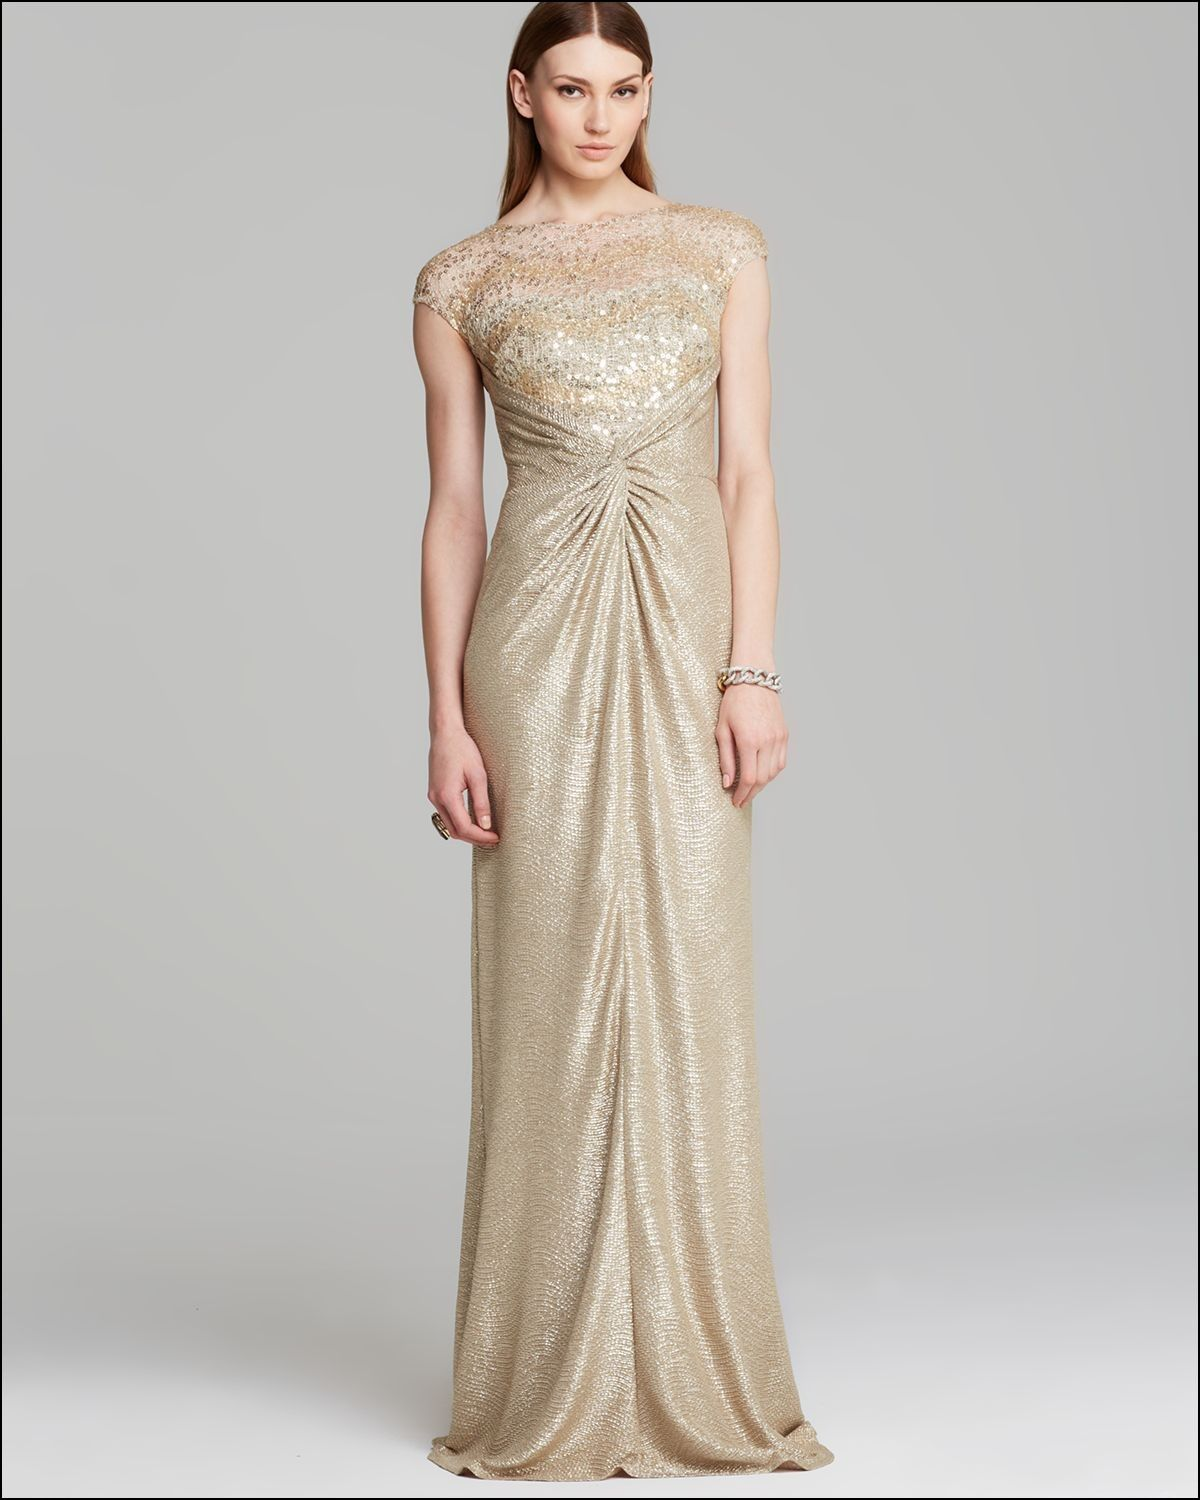 David Meister Gold Gown | Special occasion dresses | Pinterest ...